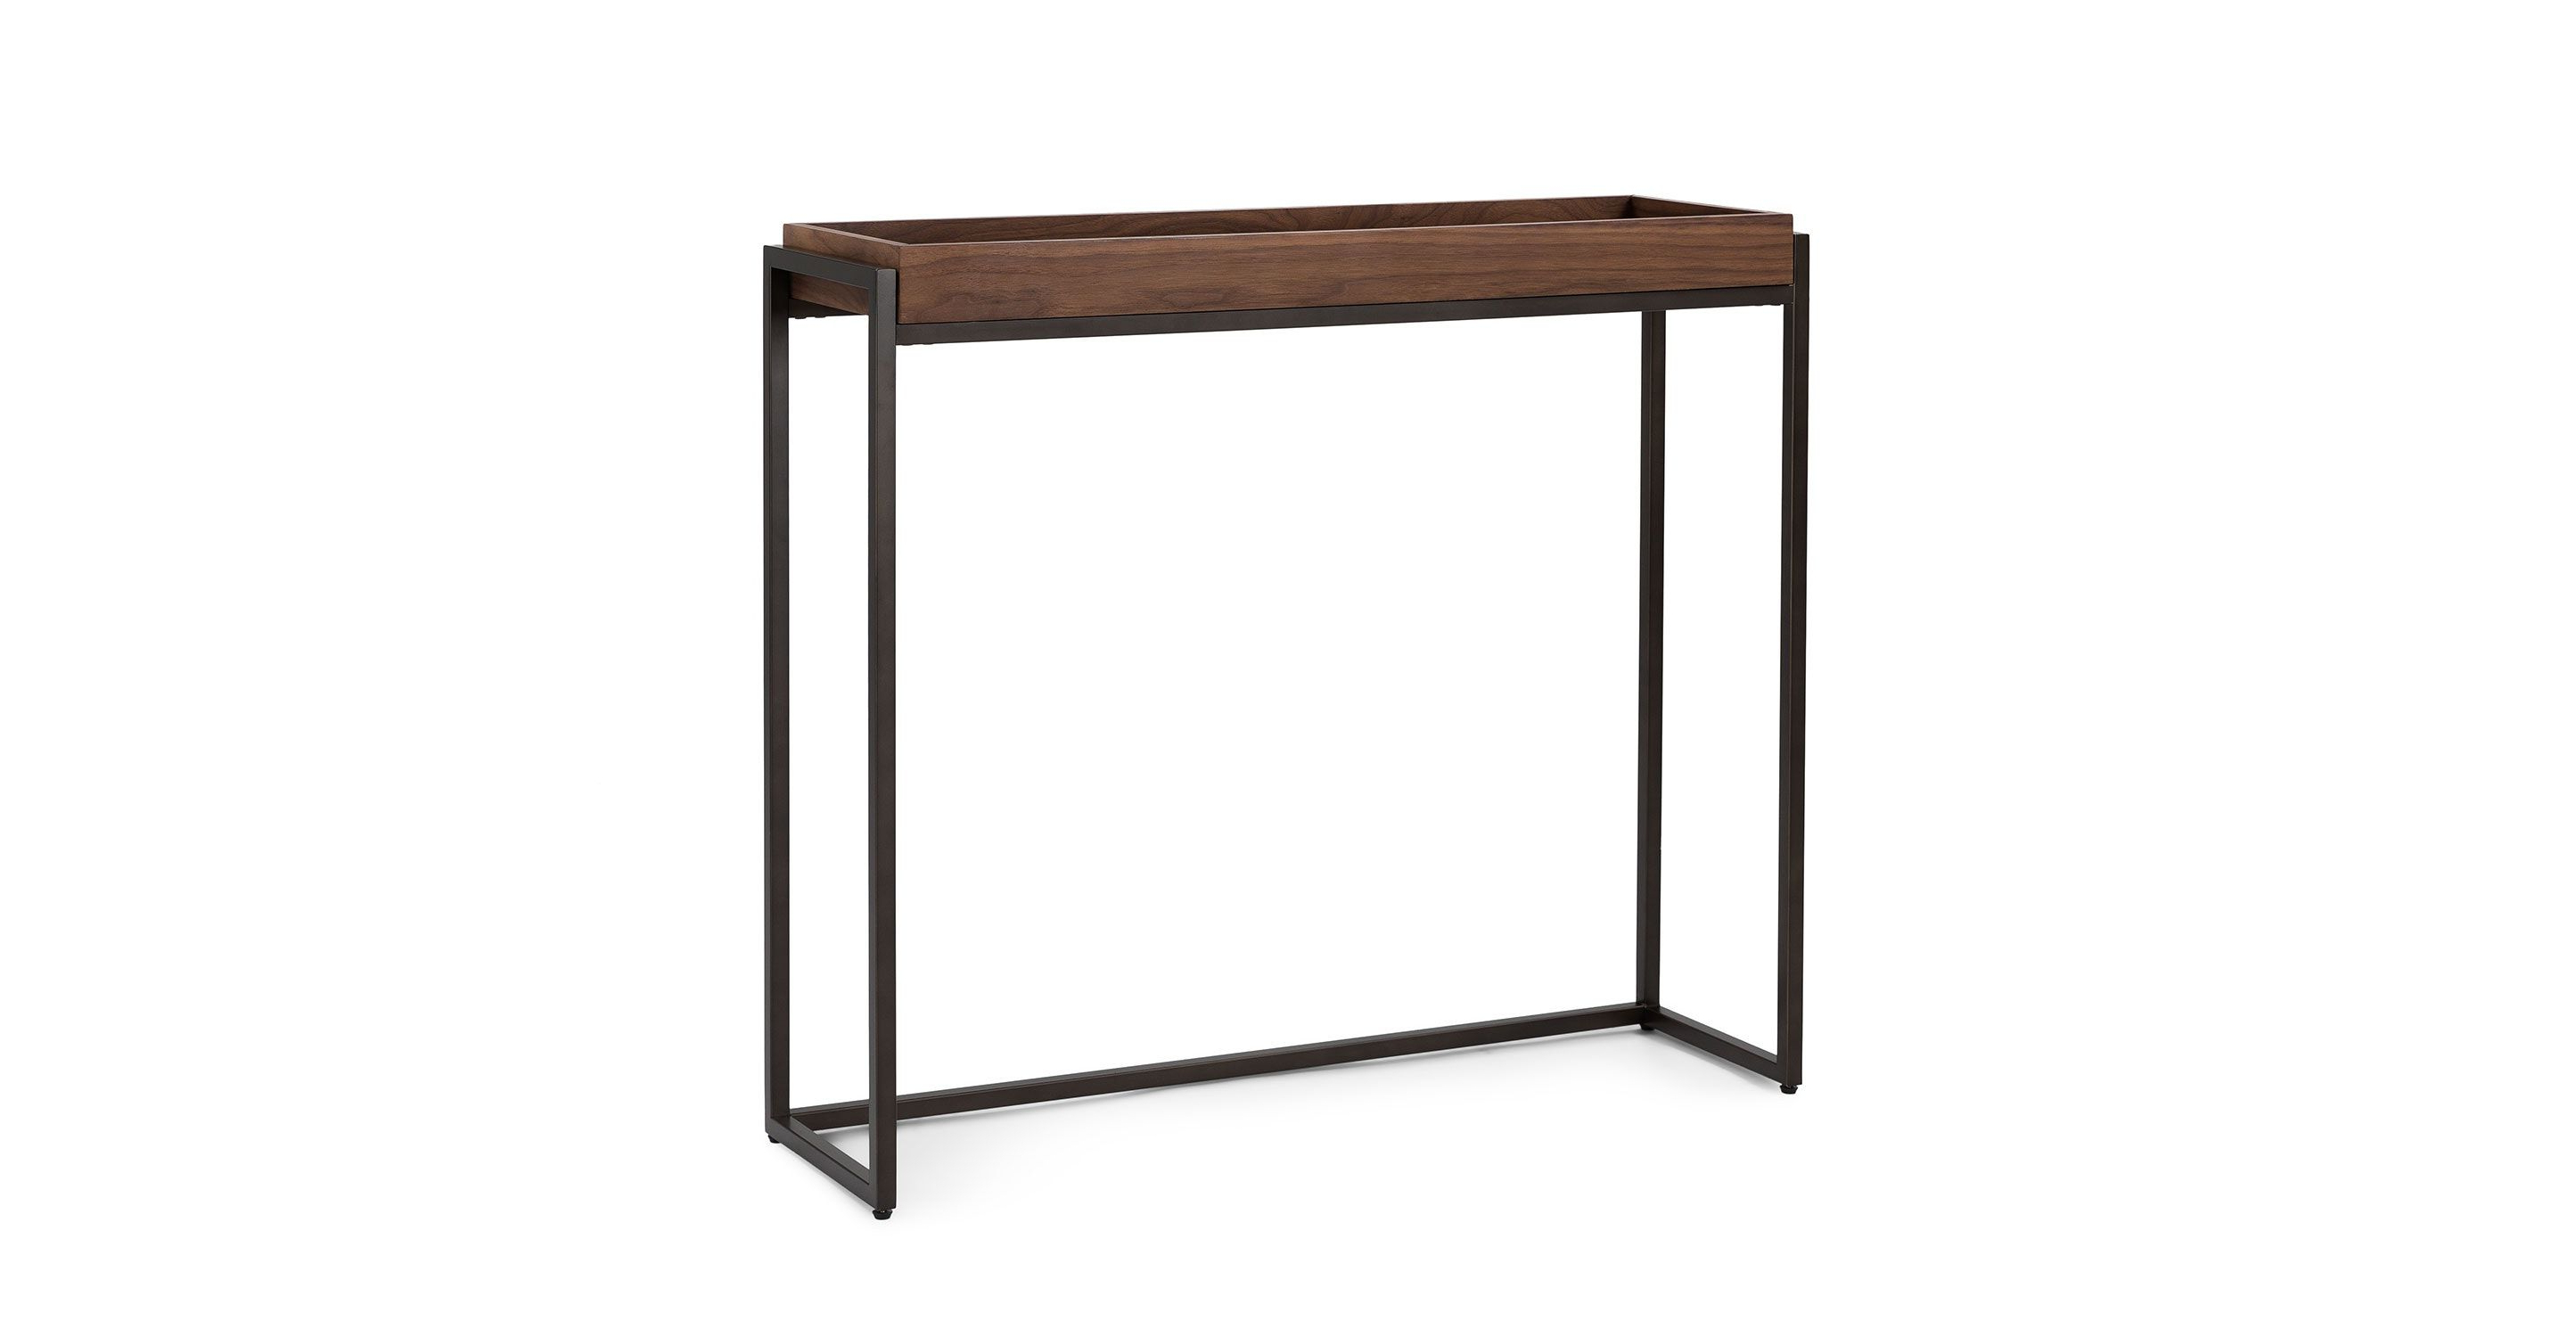 Oscuro Walnut Console Pertaining To Parsons Clear Glass Top & Elm Base 48x16 Console Tables (View 19 of 20)